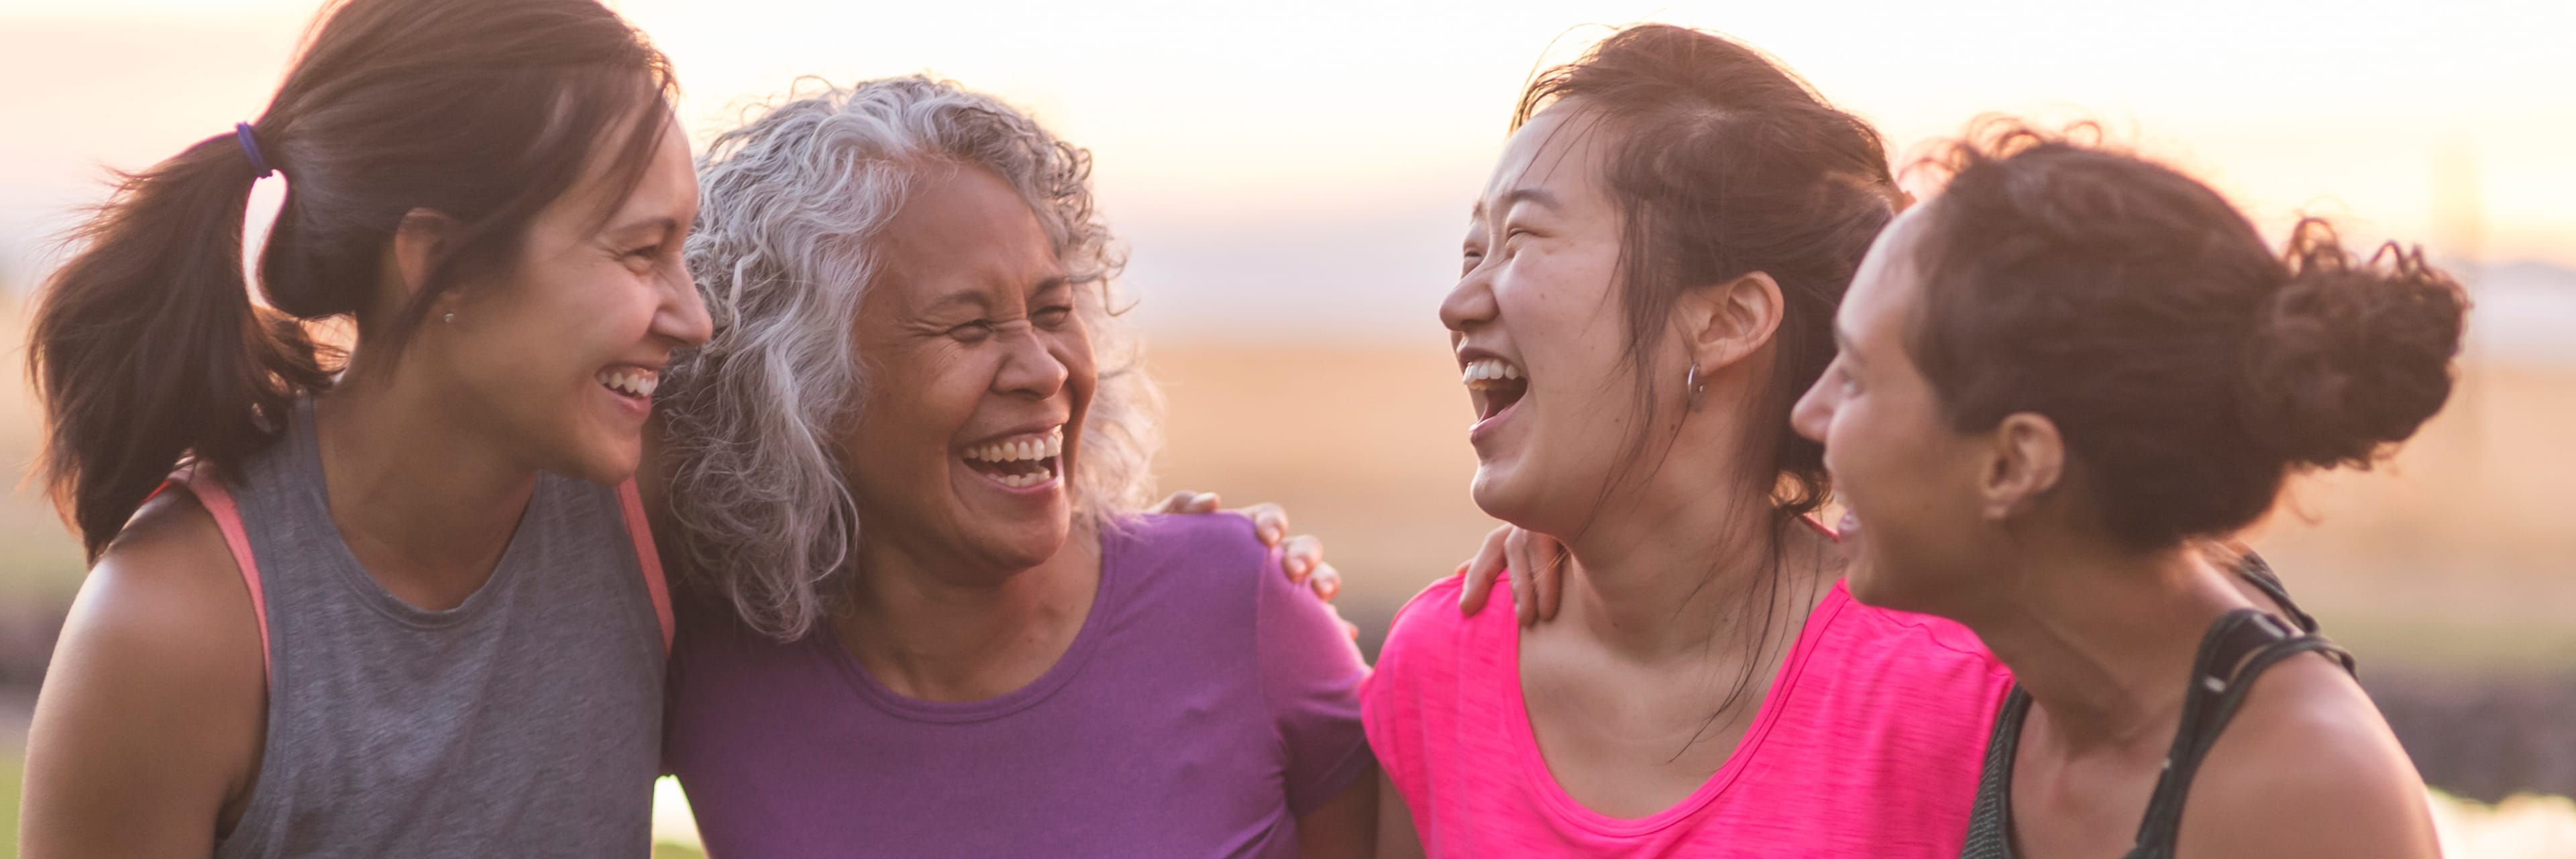 group of four women laughing together